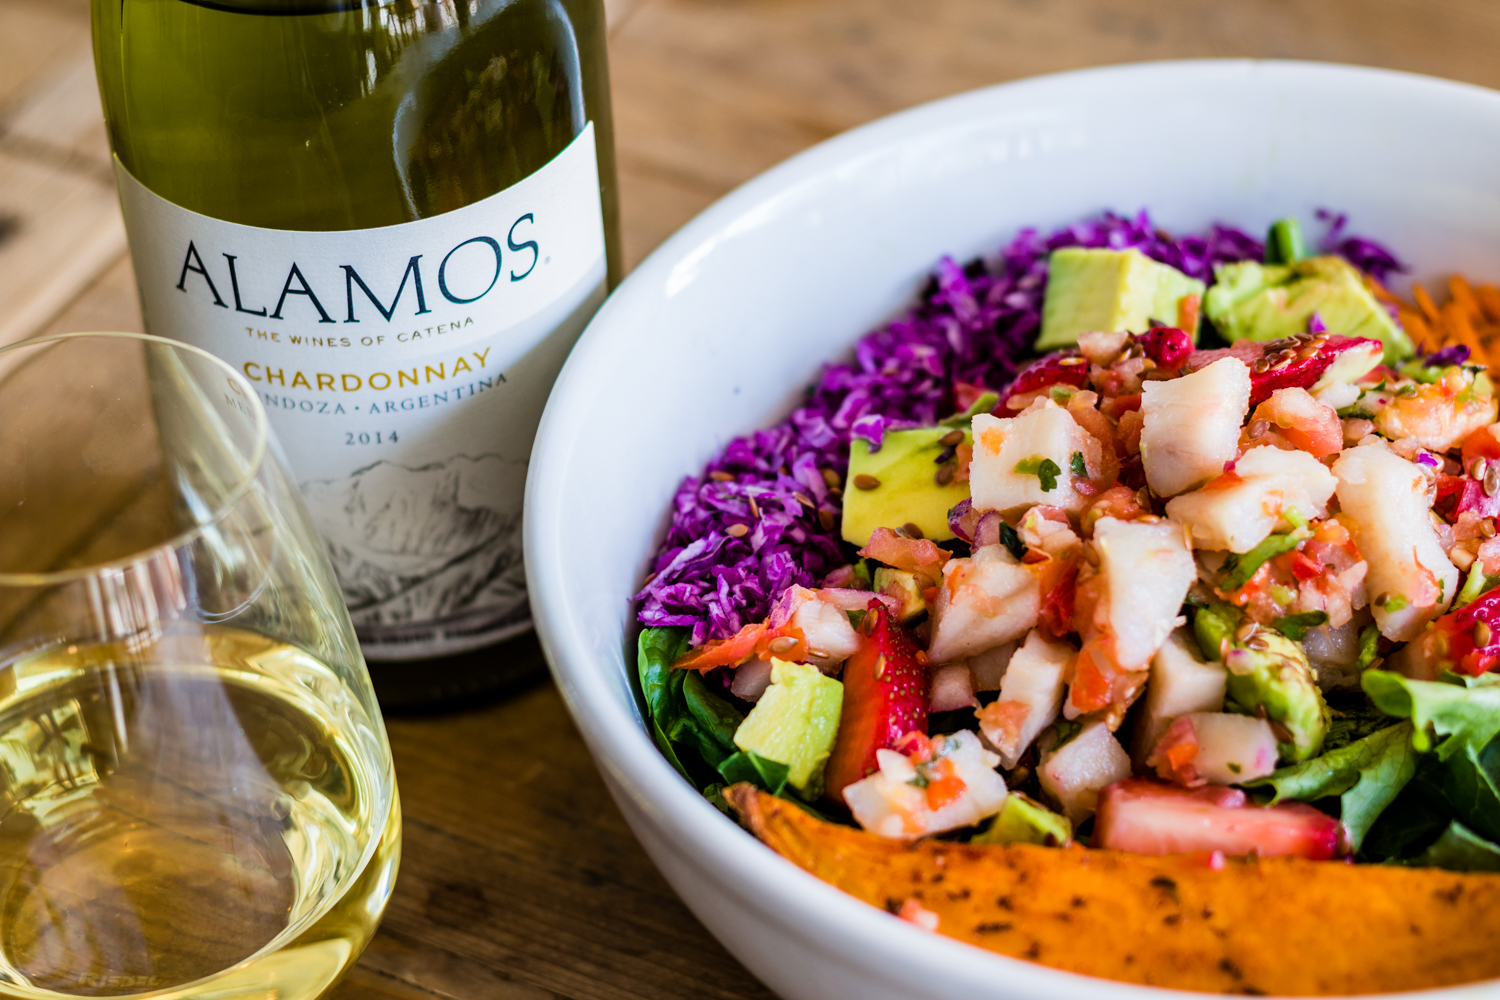 Almos Wines